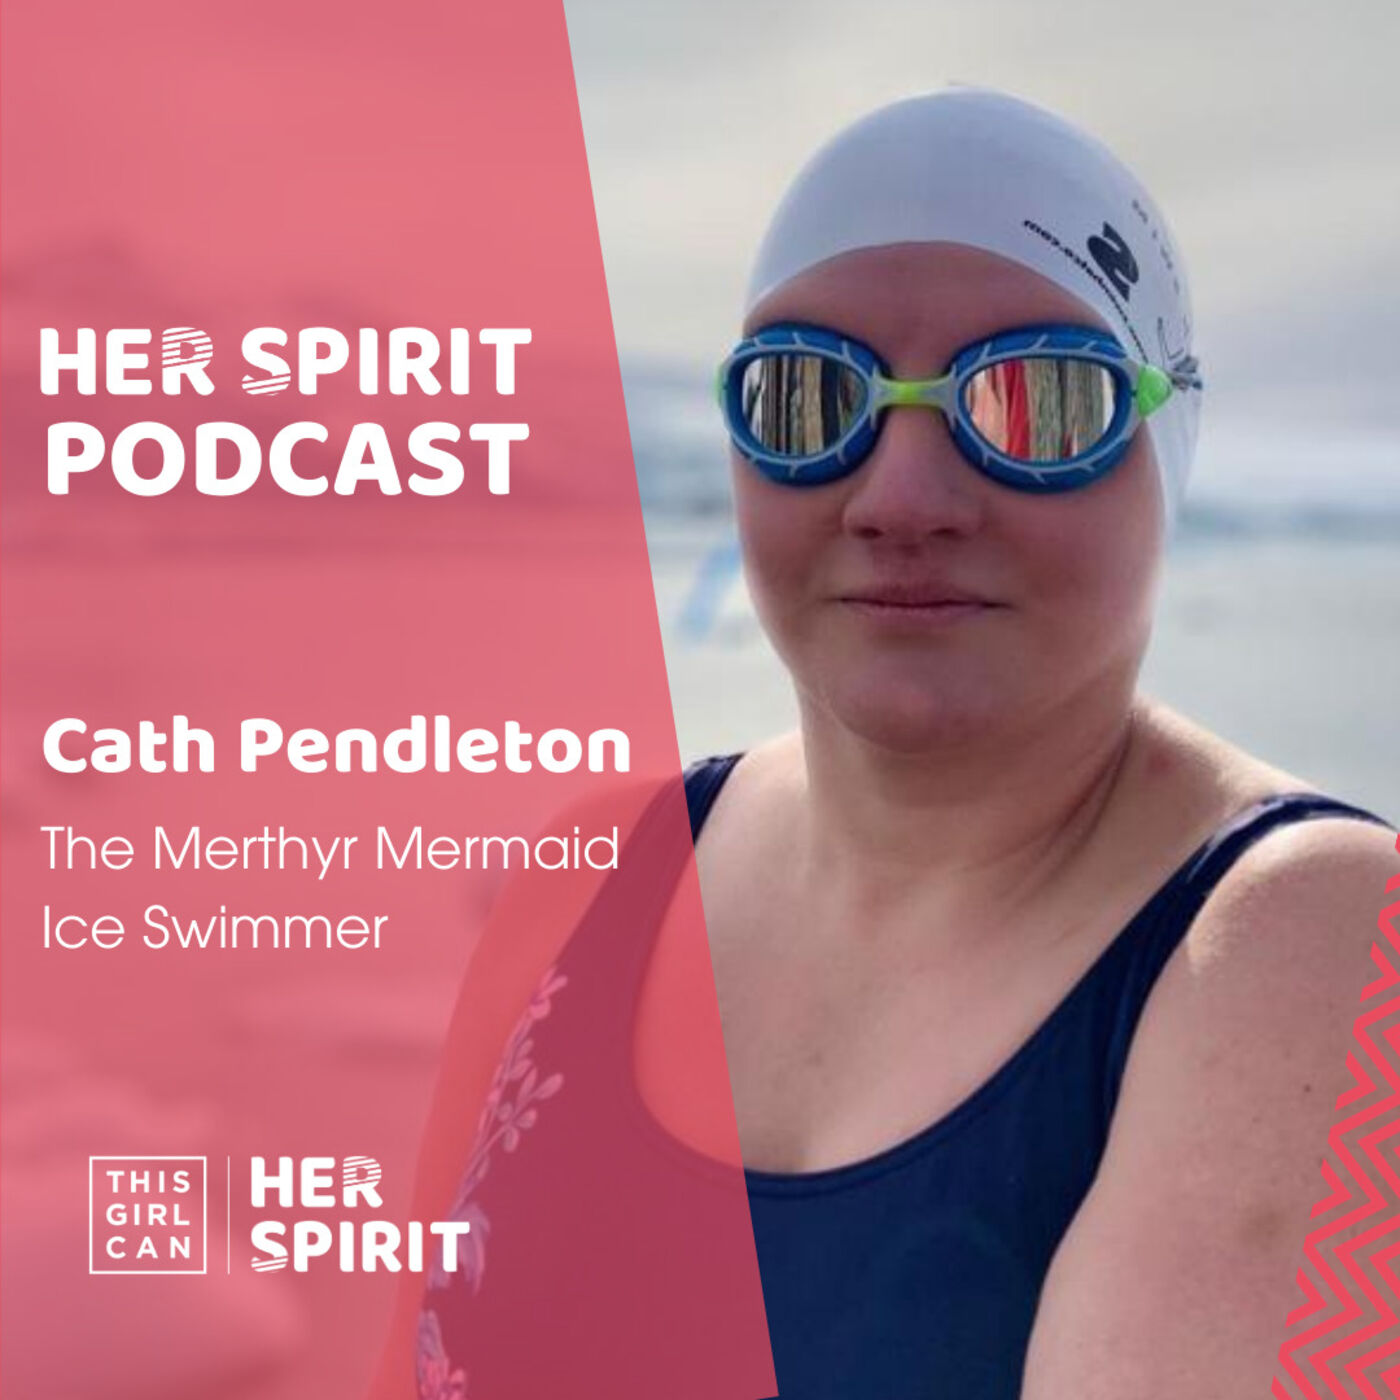 Ice swimmer Cath Pendleton AKA The Merthyr Mermaid talks to Annie and Louise about her love of swimming, life in lockdown and a life with many challenges